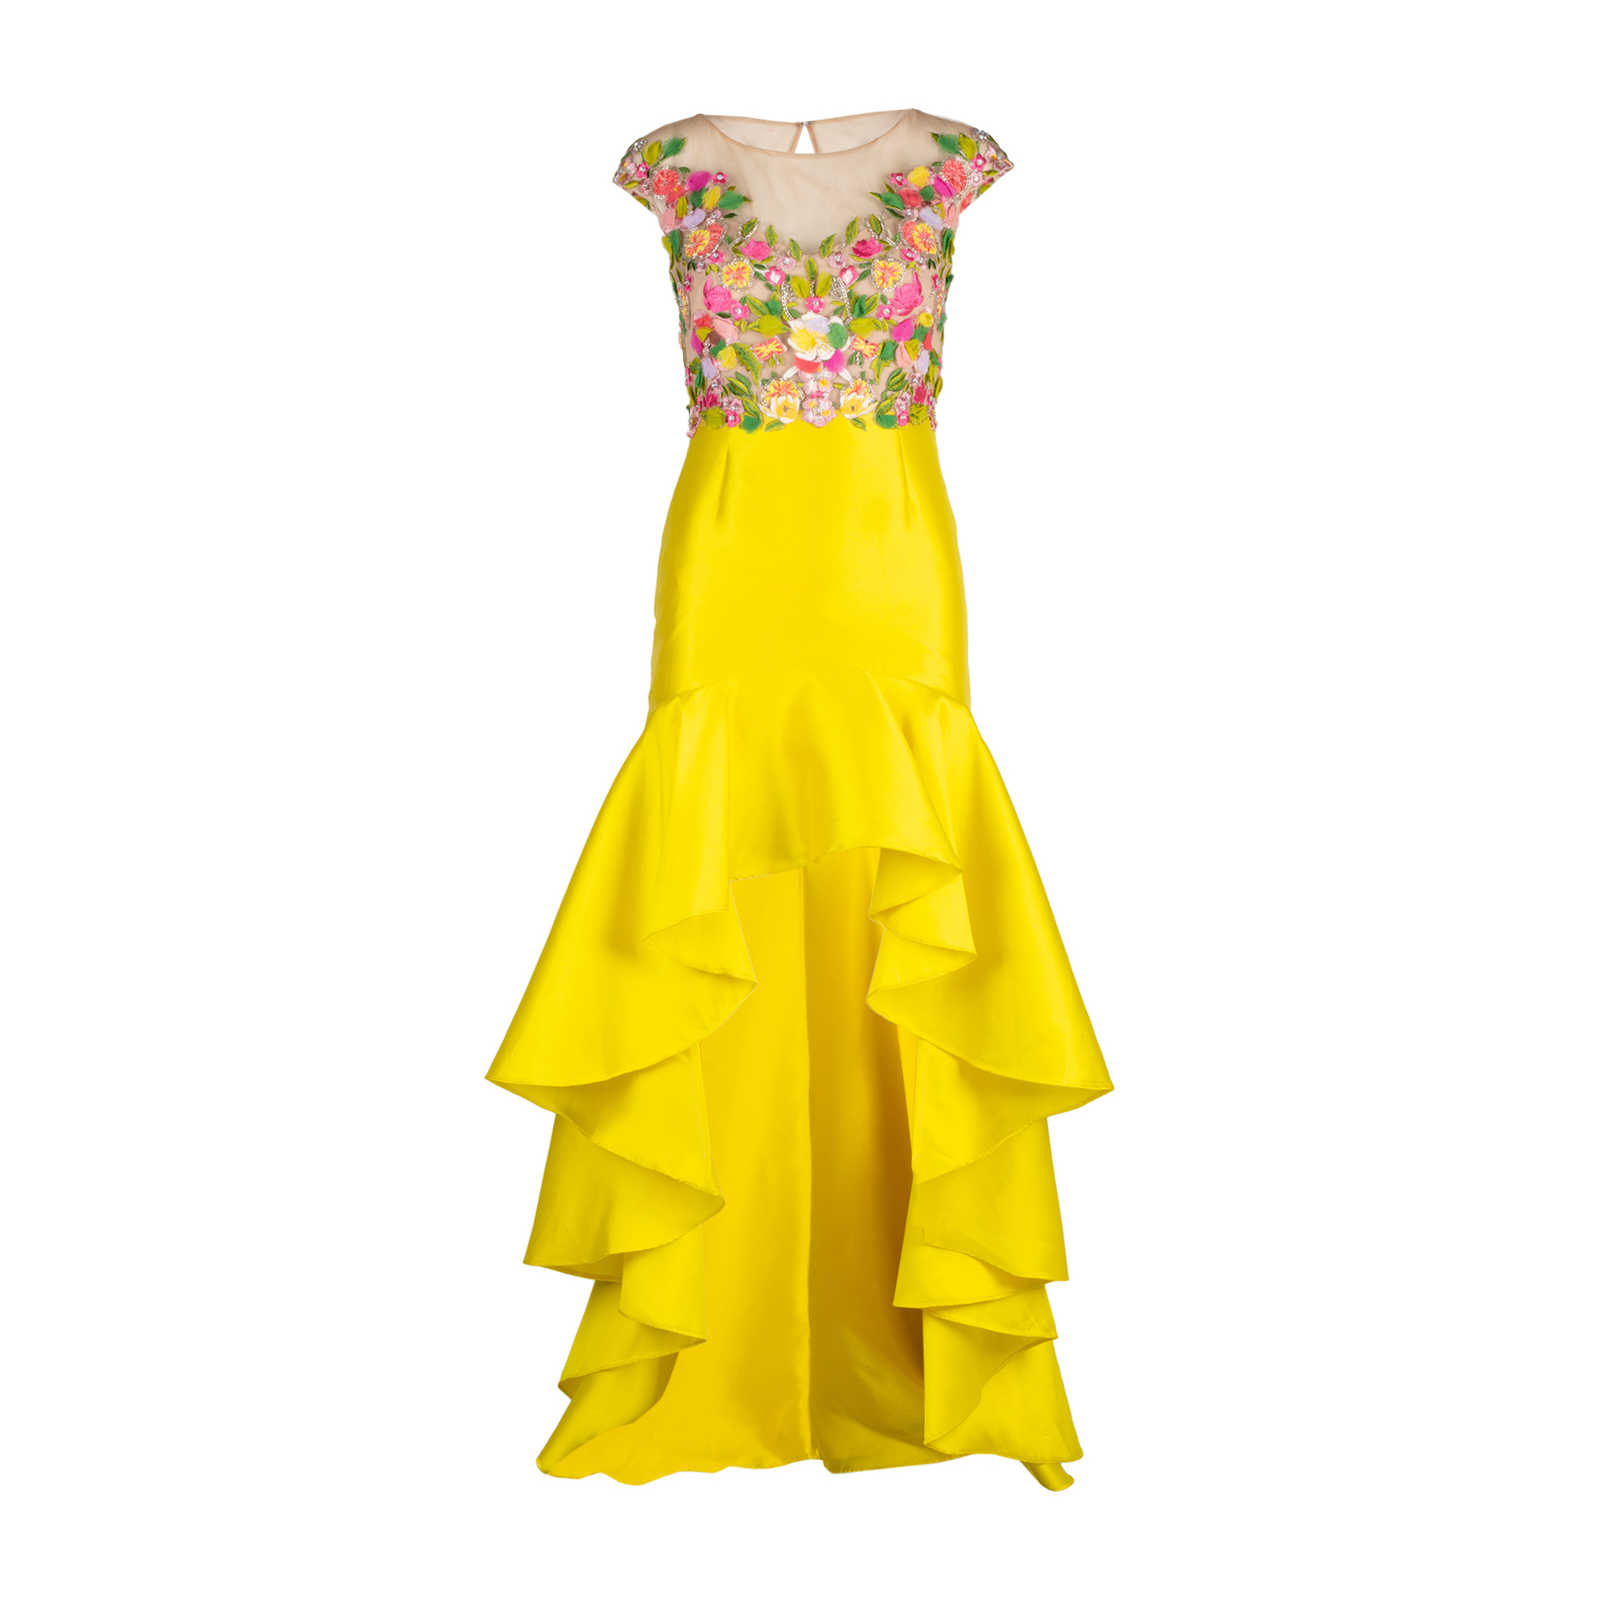 75aedb94306 Authentic Second Hand Marchesa Notte Embroidered Mikado High-Low Dress  (PSS-515- ...